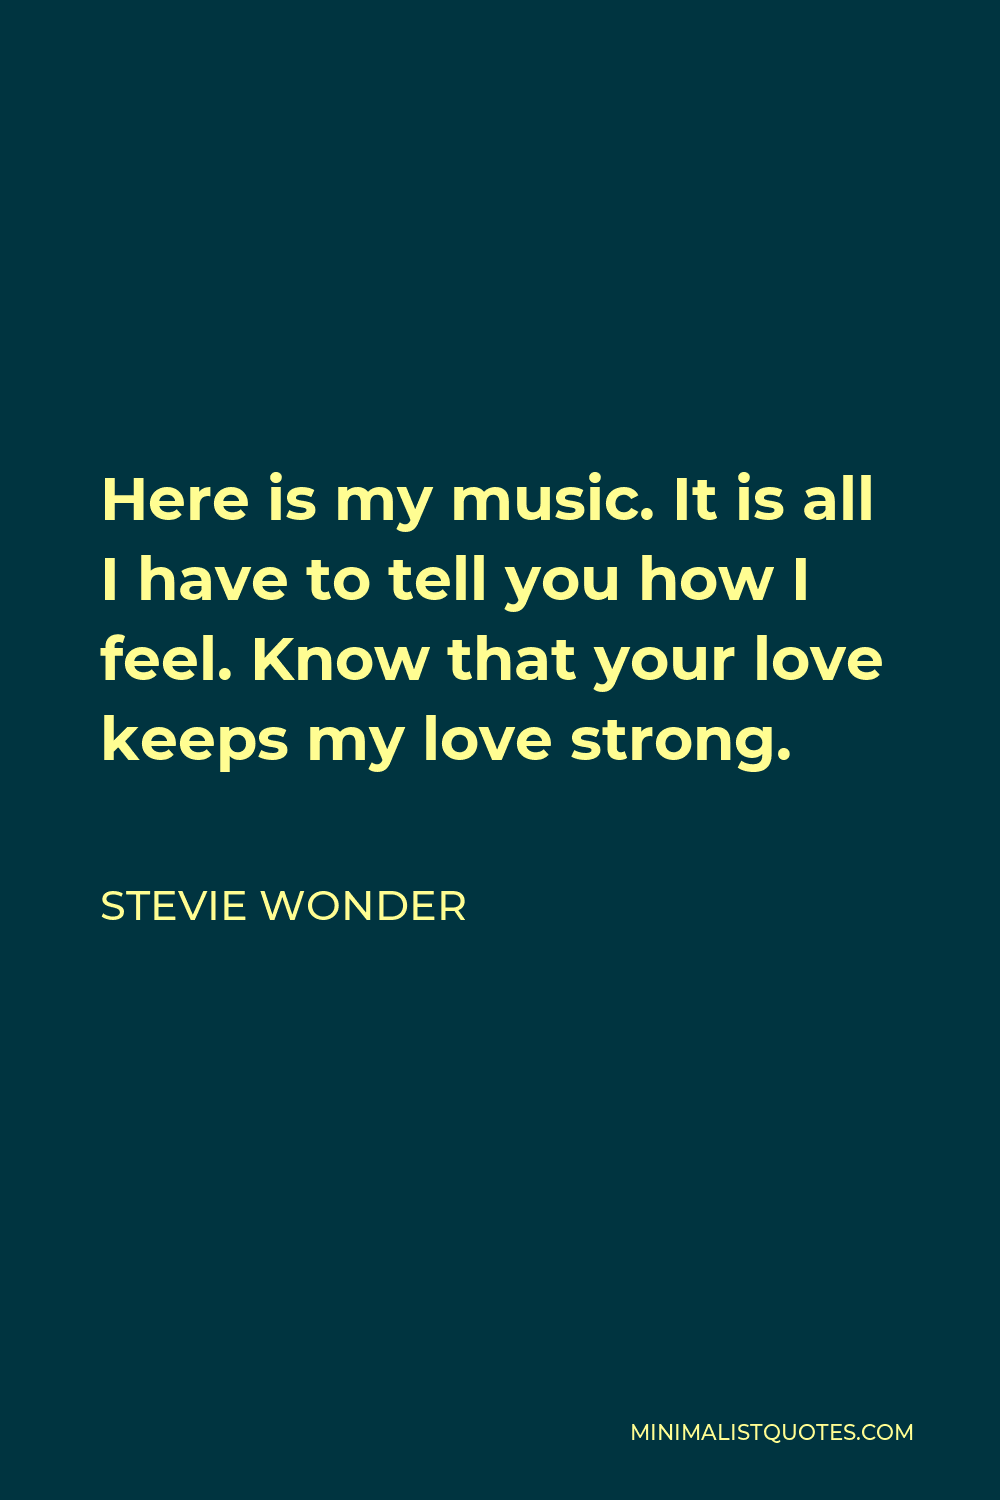 Stevie Wonder Quote - Here is my music. It is all I have to tell you how I feel. Know that your love keeps my love strong.